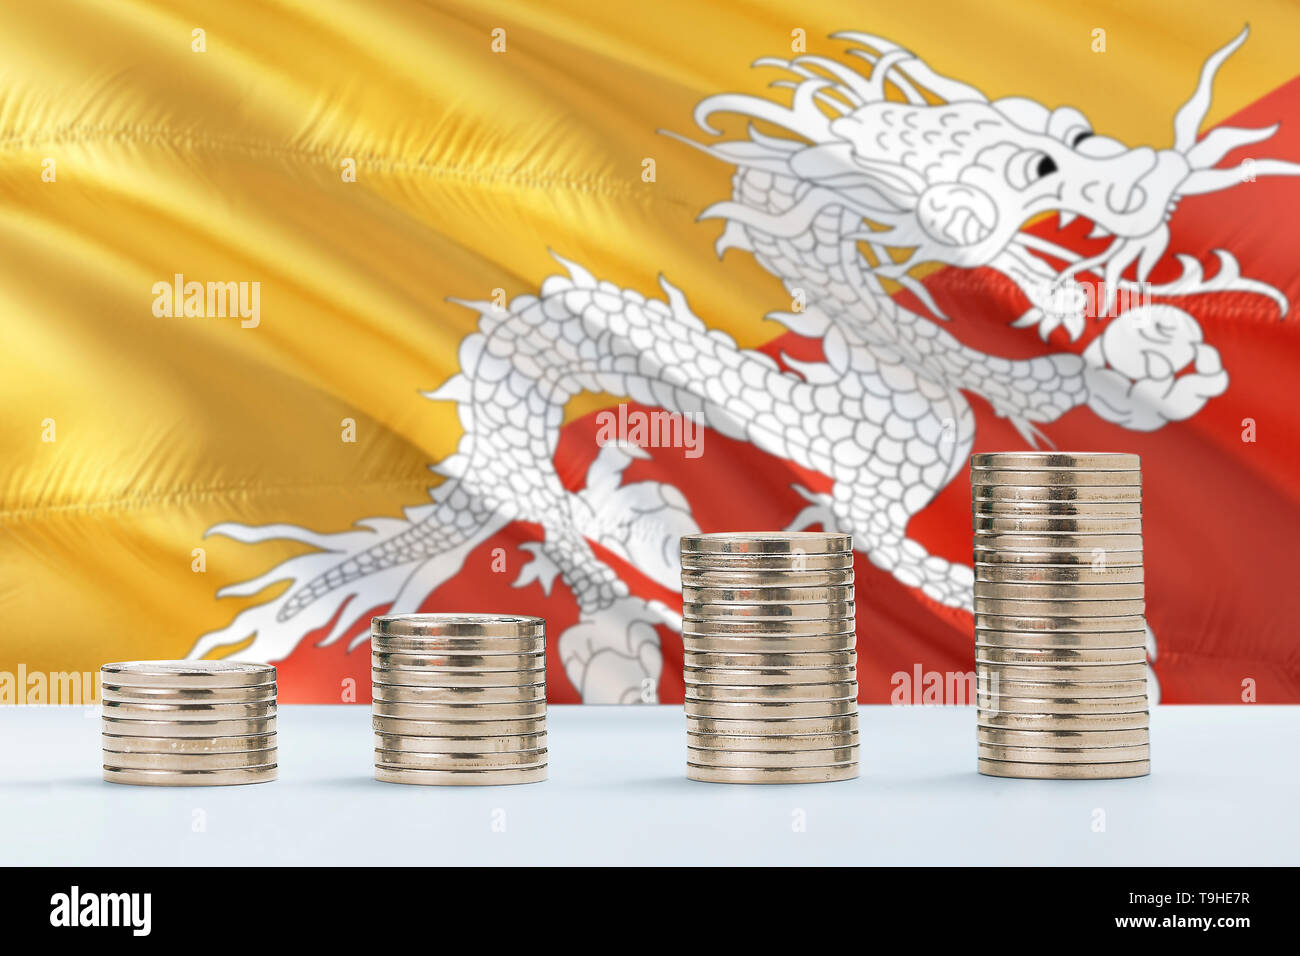 Bhutan flag waving in the background with rows of coins for finance and business concept. Saving money. - Stock Image